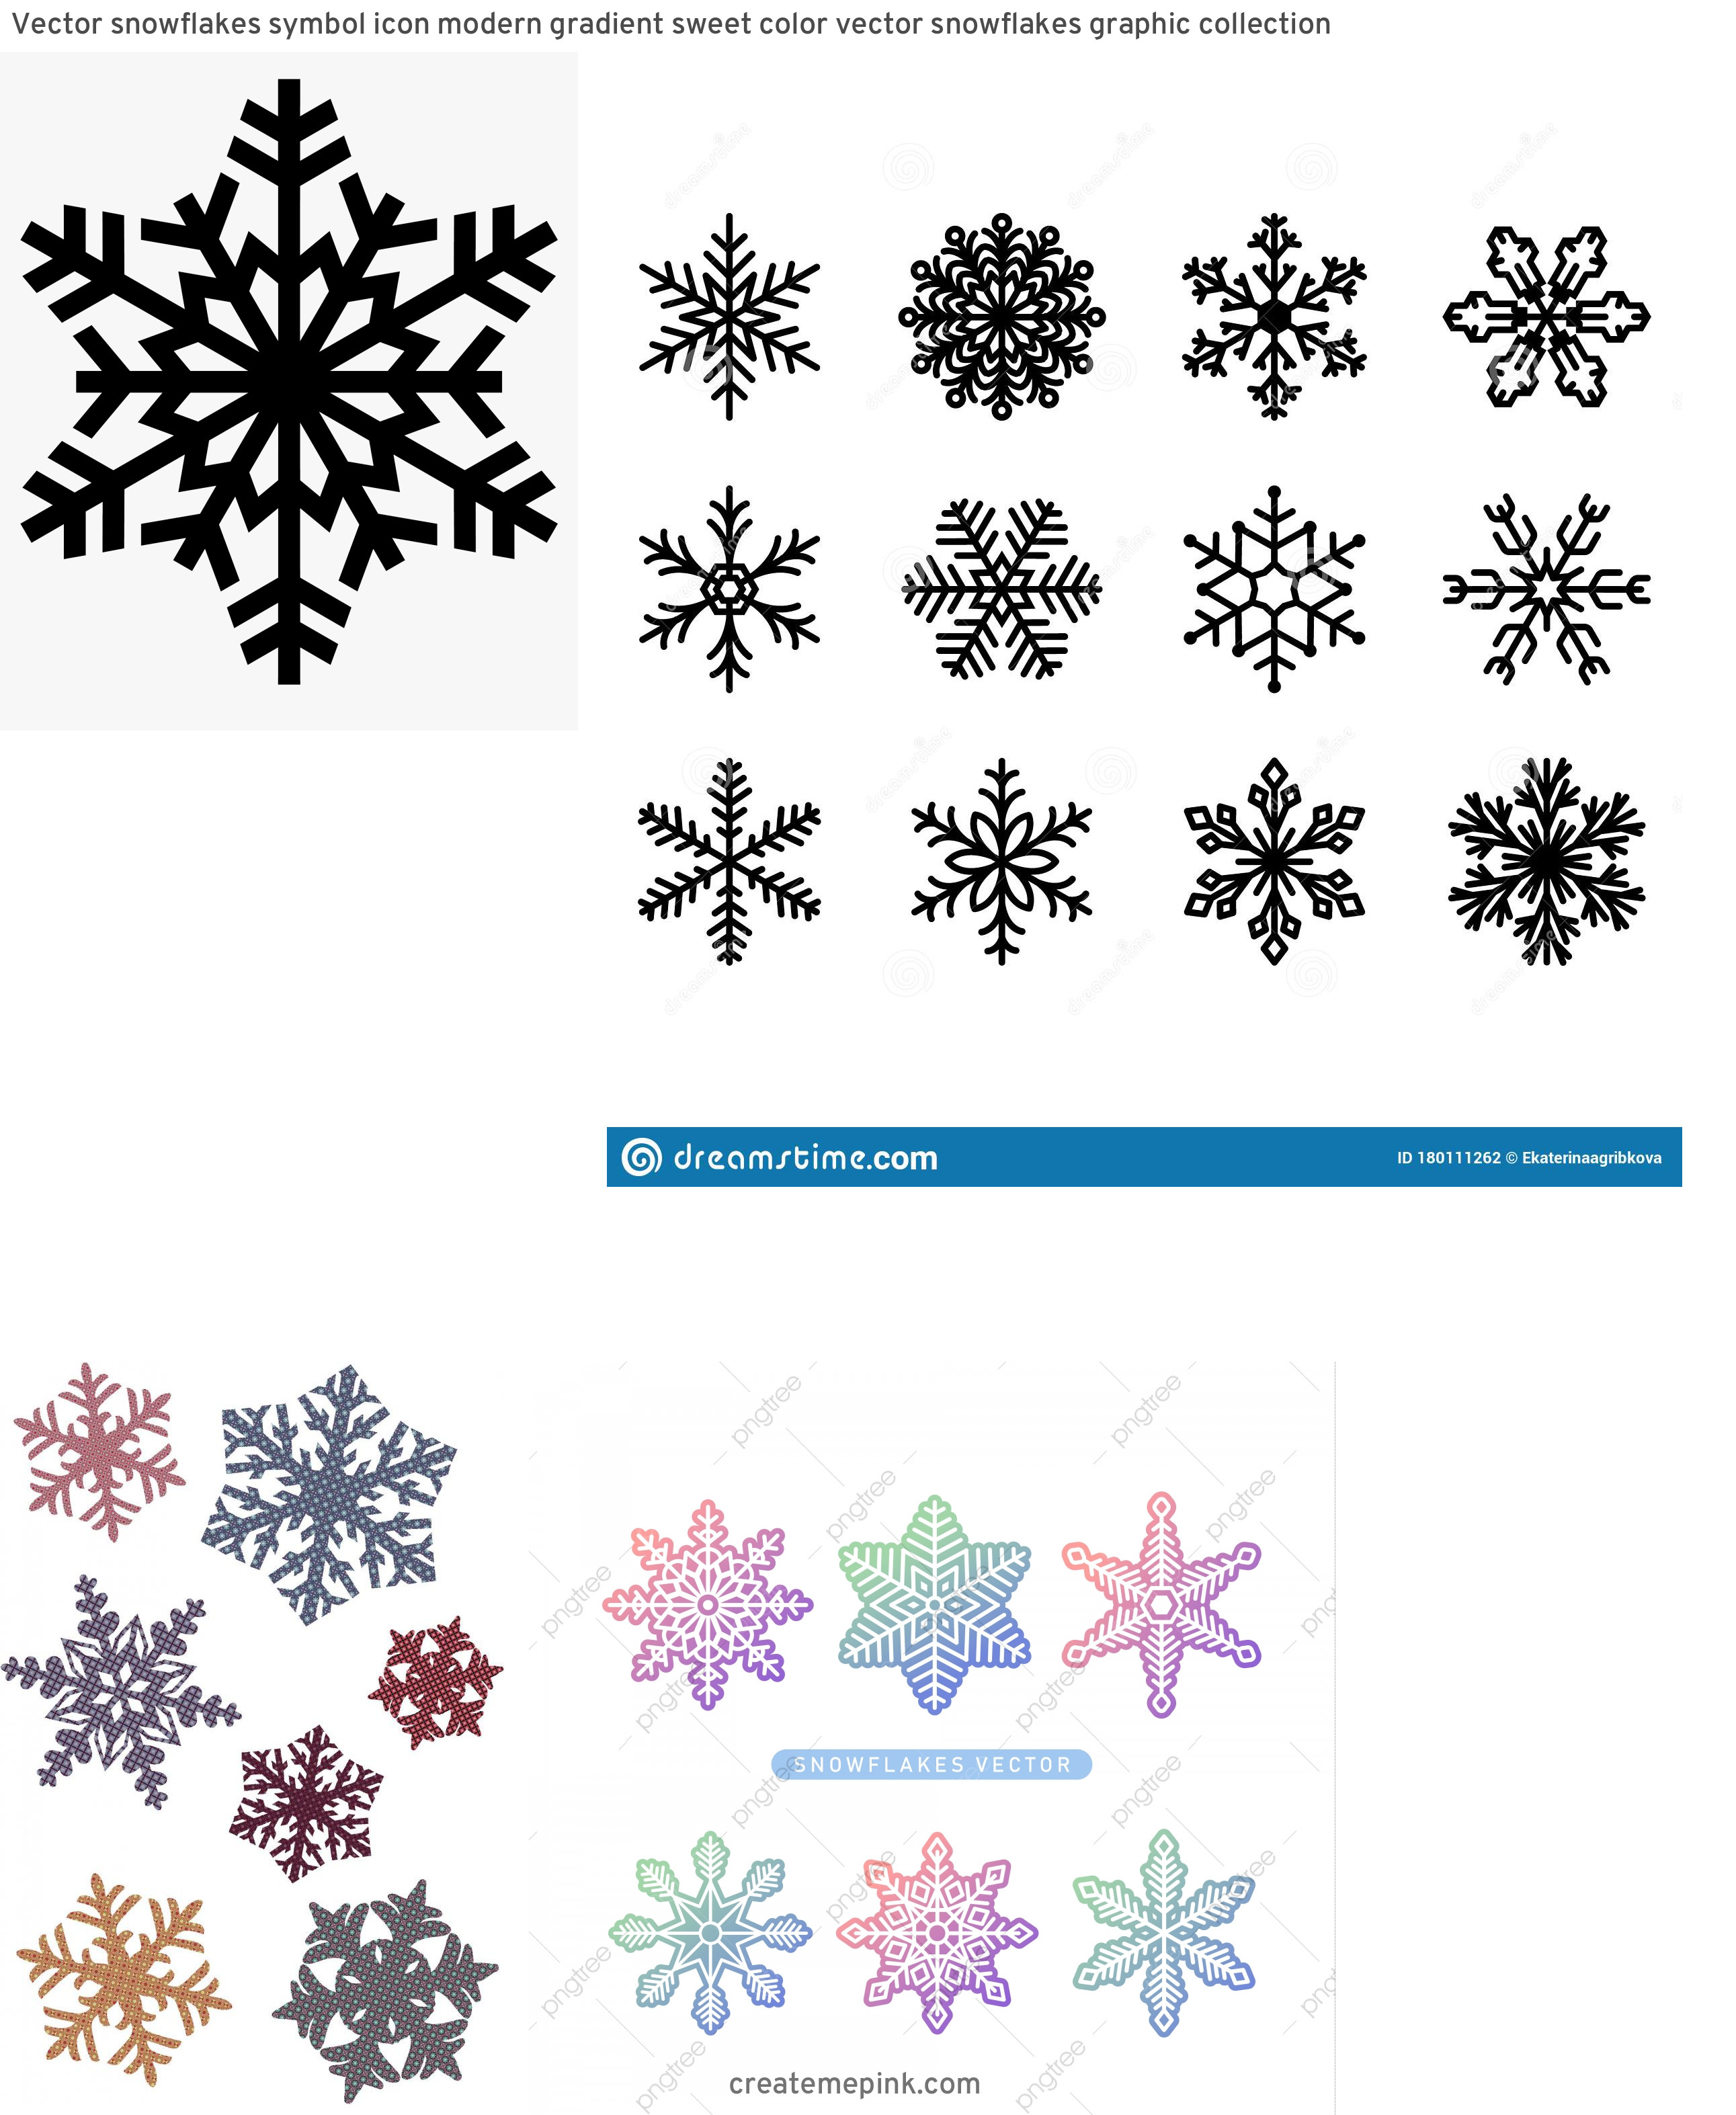 Free Vector Snow Flakes: Vector Snowflakes Symbol Icon Modern Gradient Sweet Color Vector Snowflakes Graphic Collection